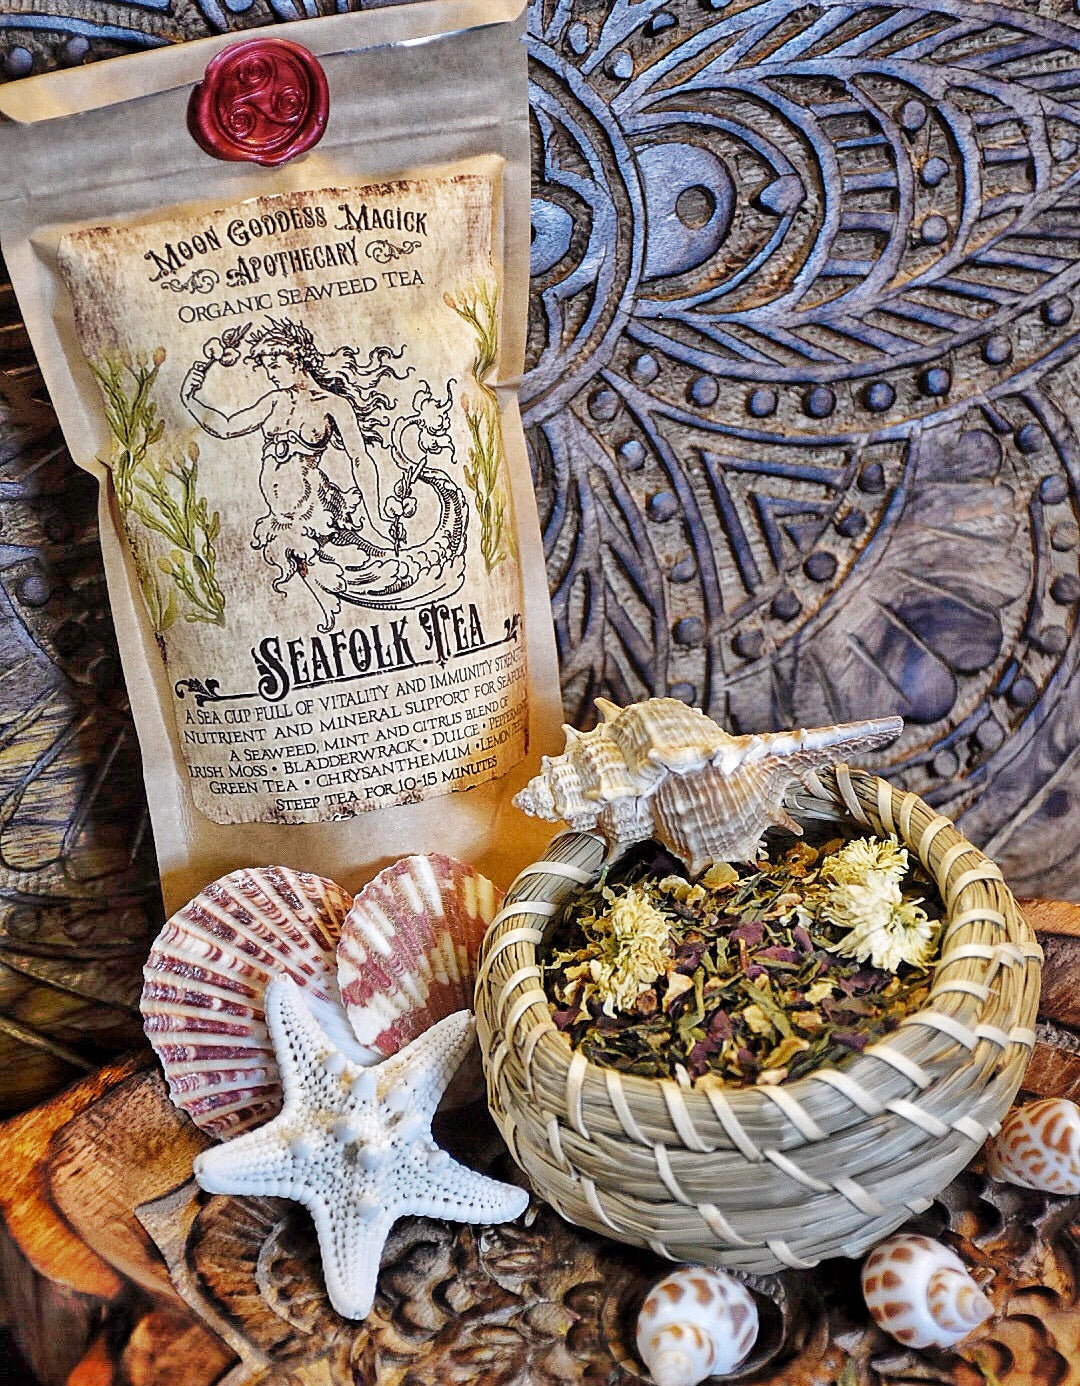 Seafolk Tea /// Seaweed Tea /// Organic /// Vitamin and Mineral rich for Optimal Health ///  Makes 9 cups of Tea - Moon Goddess Magick Apothecary